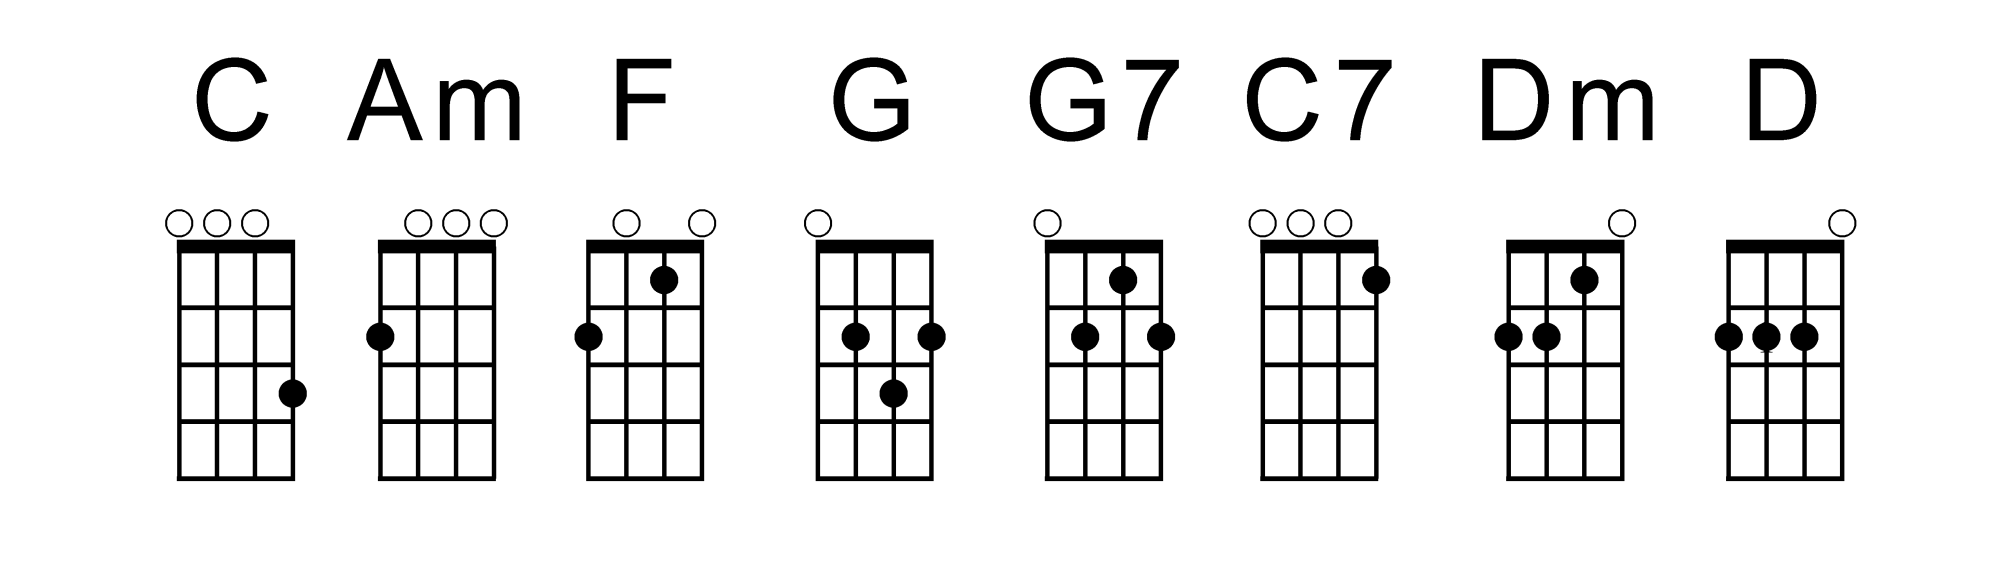 Congratulations on receiving your first ukulele now here is beginning chords2 hexwebz Choice Image